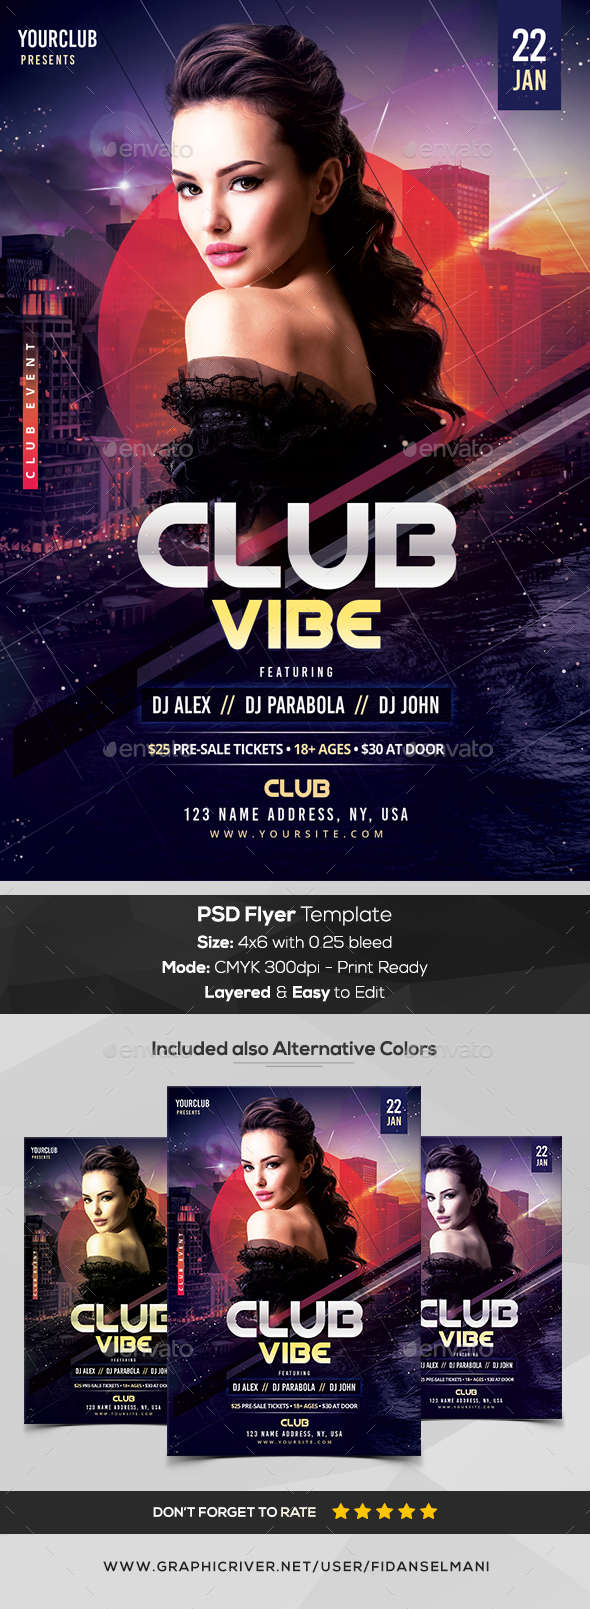 GraphicRiver Club Vibe PSD Flyer Template 21049824